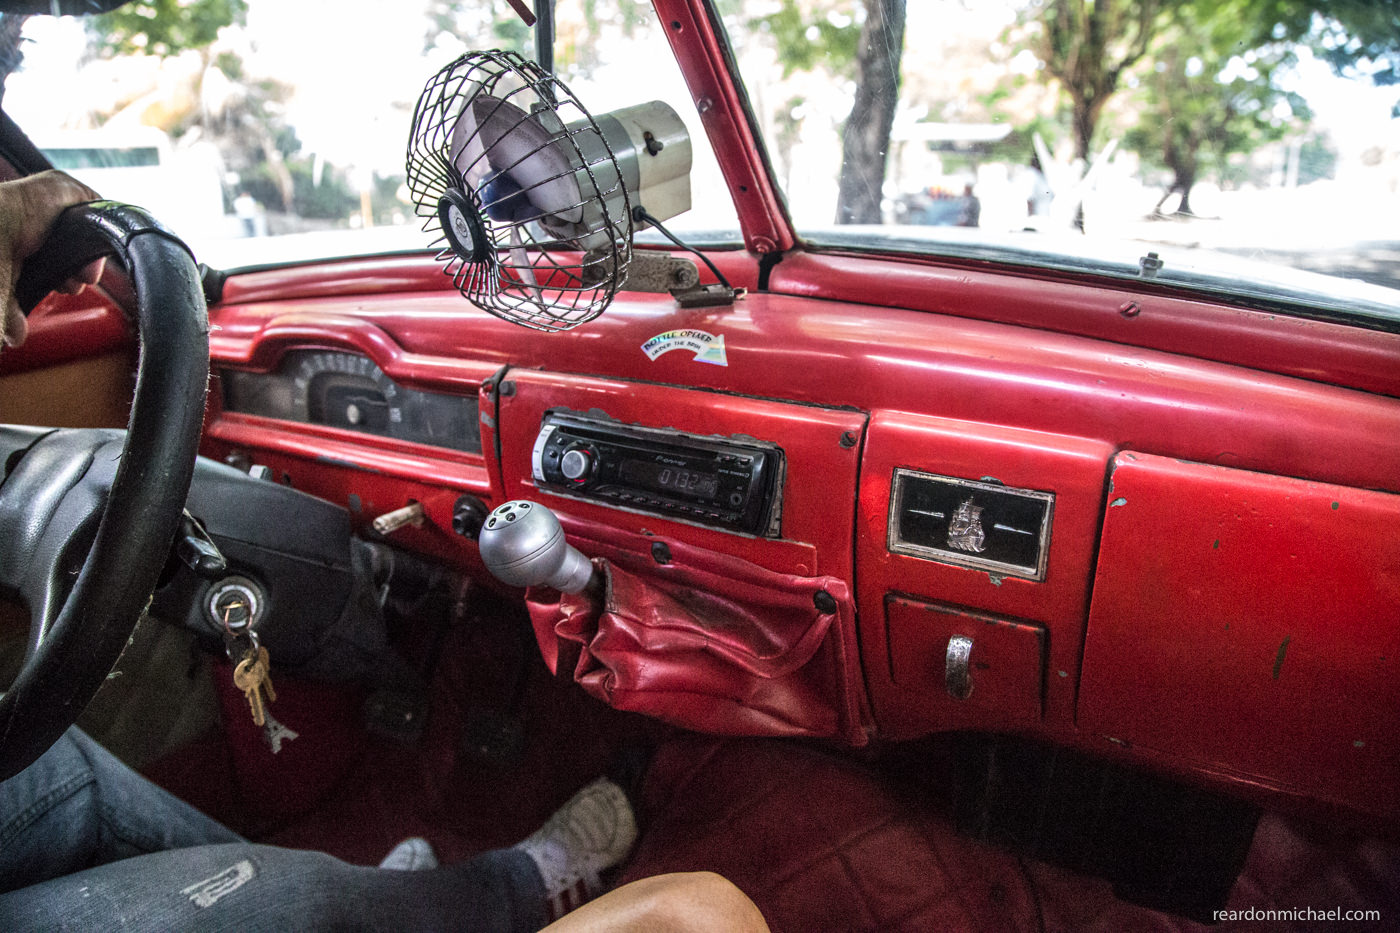 Cuba car dashboards